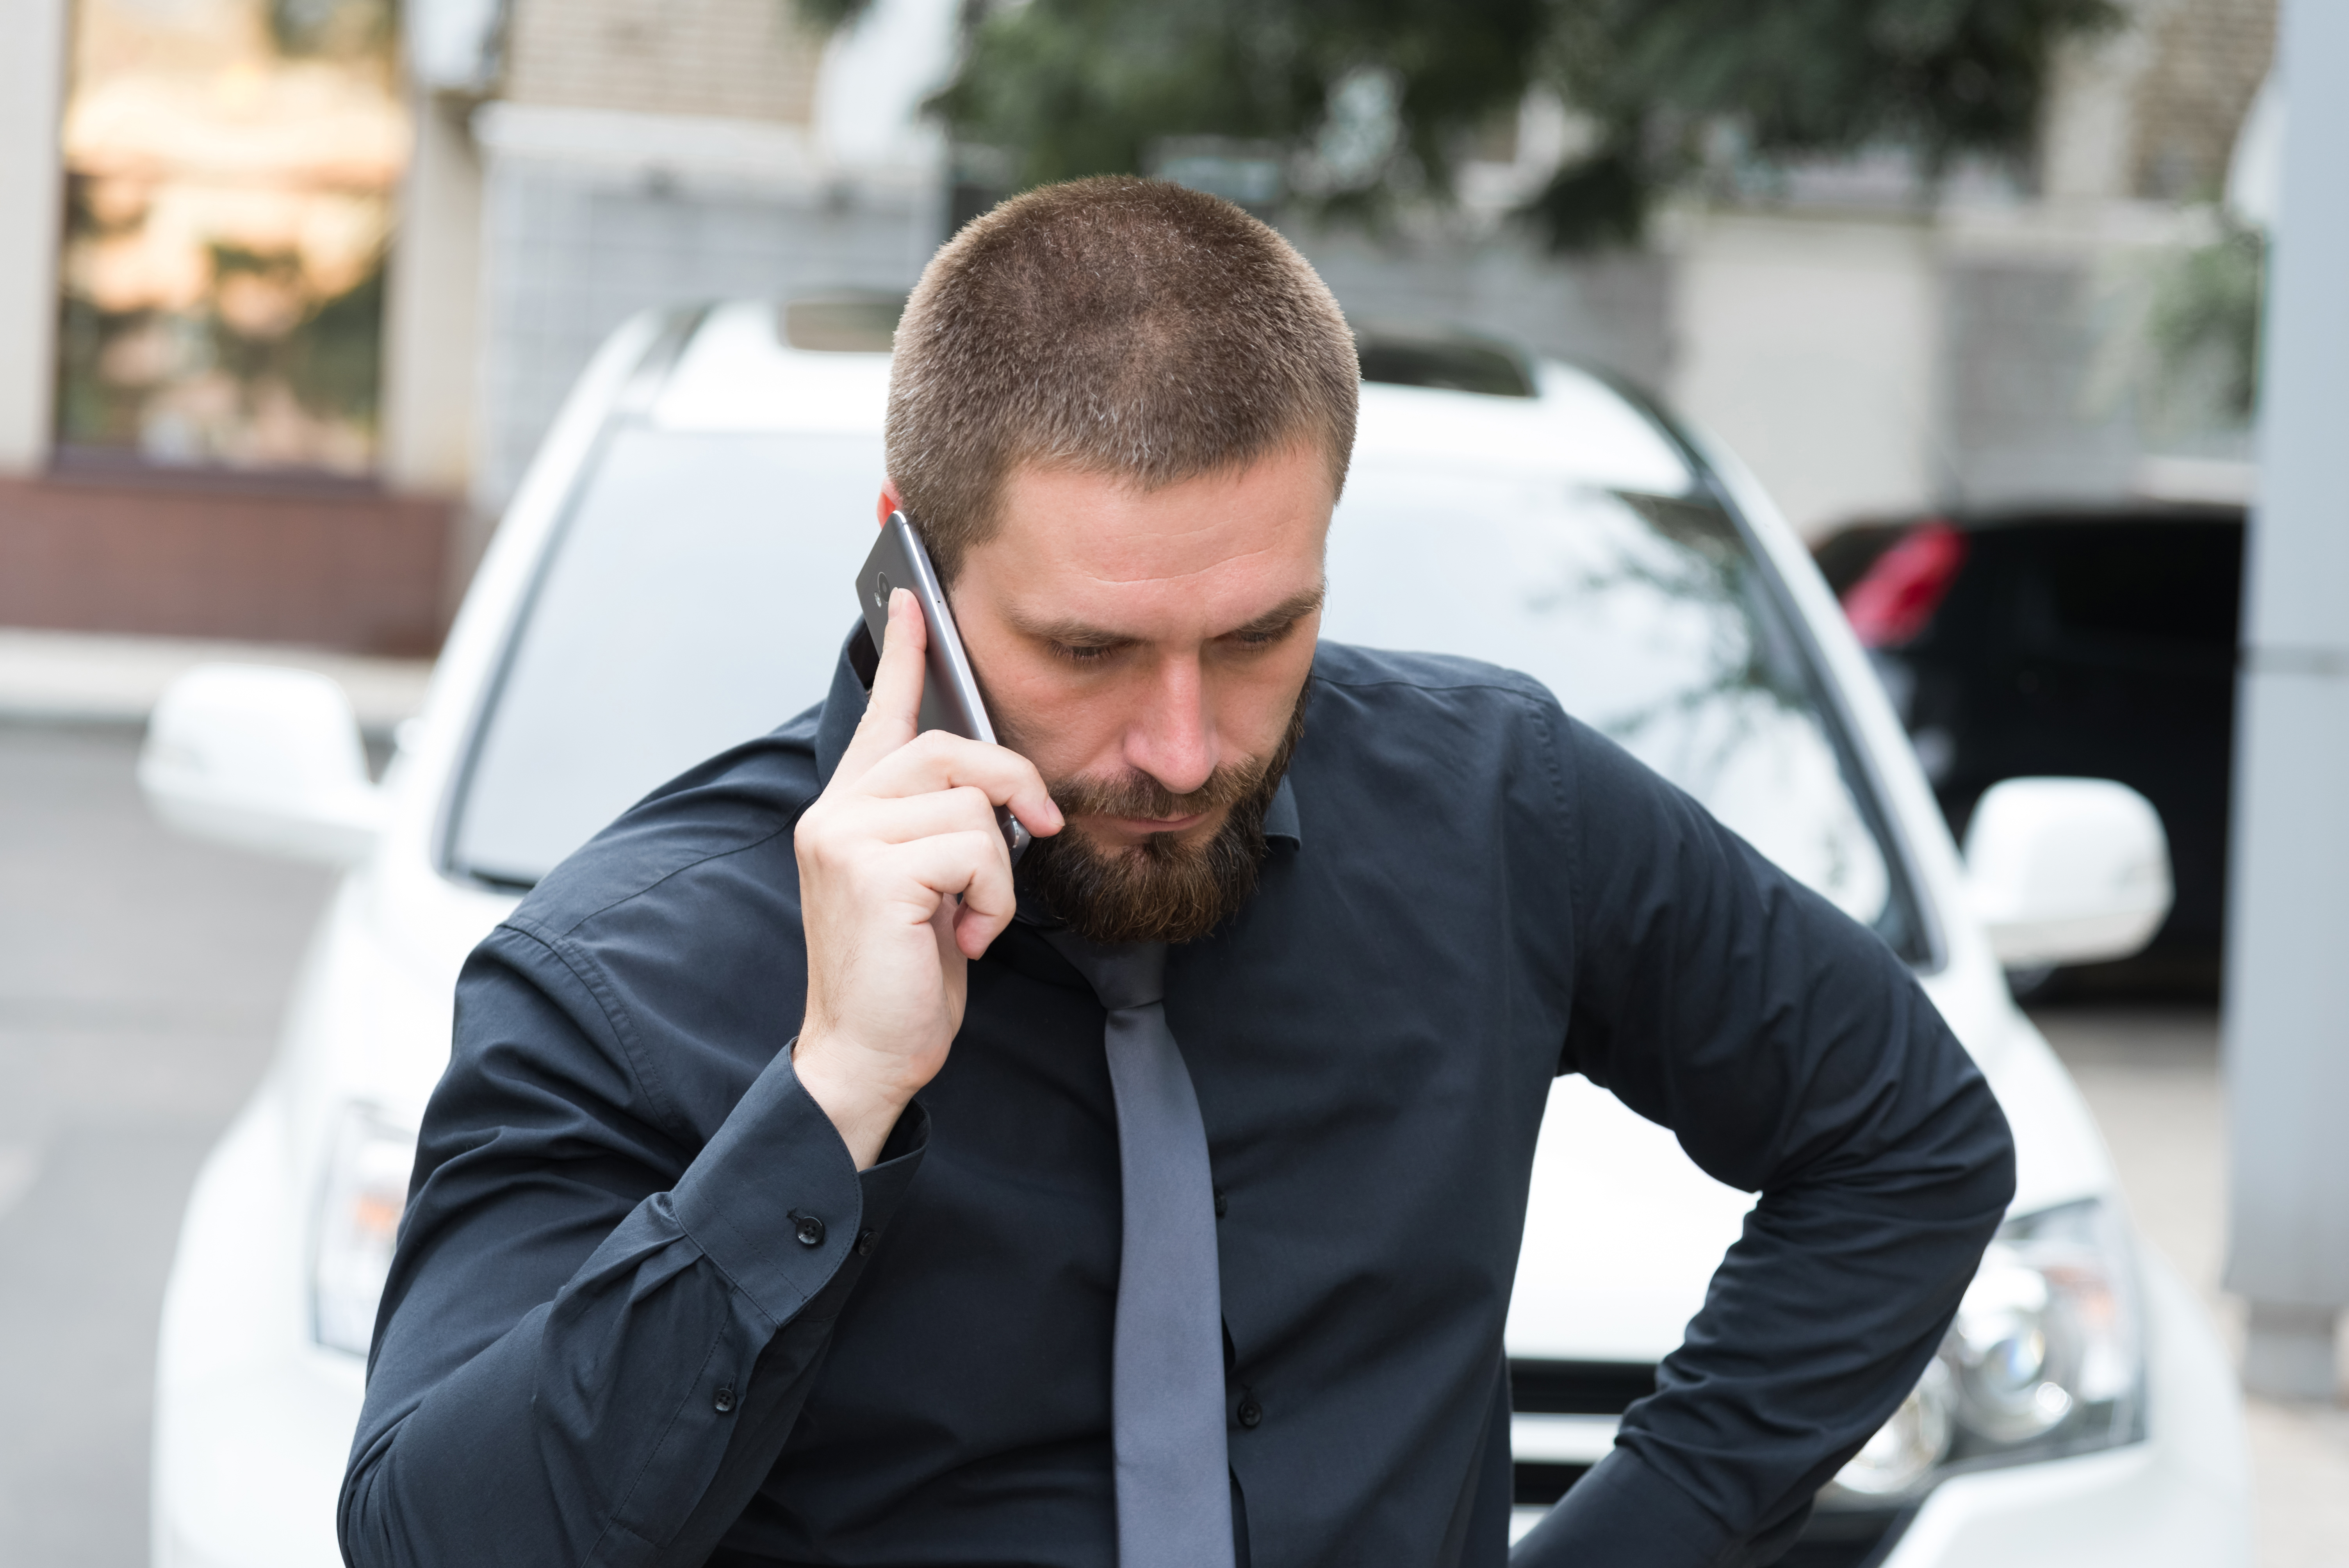 Man talking on phone near a car